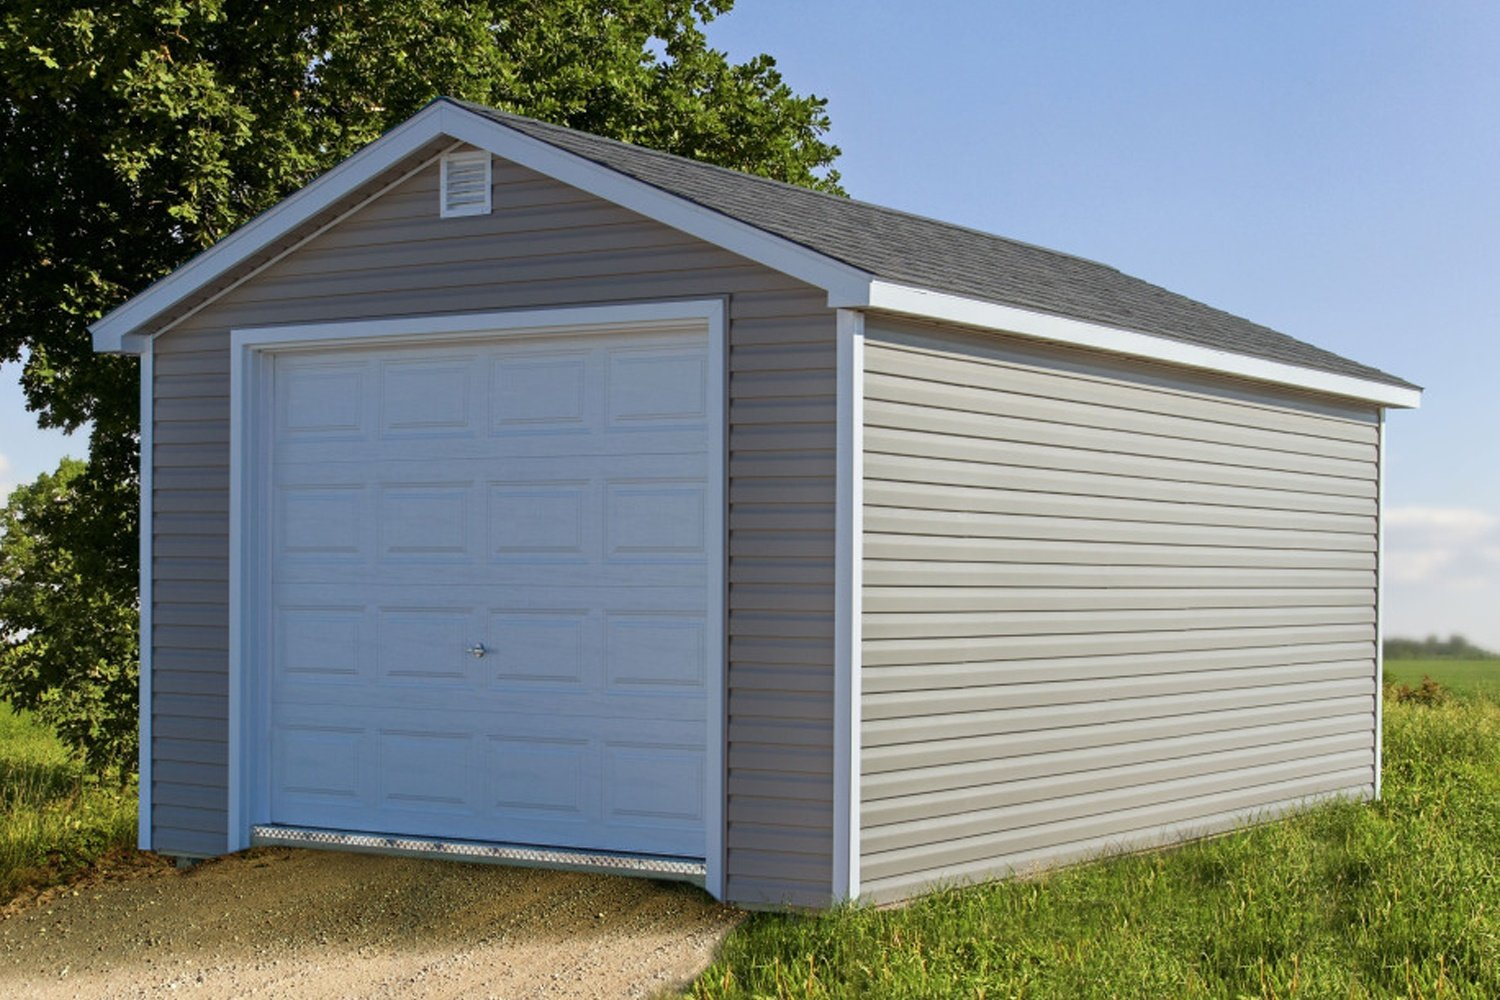 Storage shed kits for sale lifetime 8 x 15 shed aluminum for Outdoor storage sheds for sale cheap